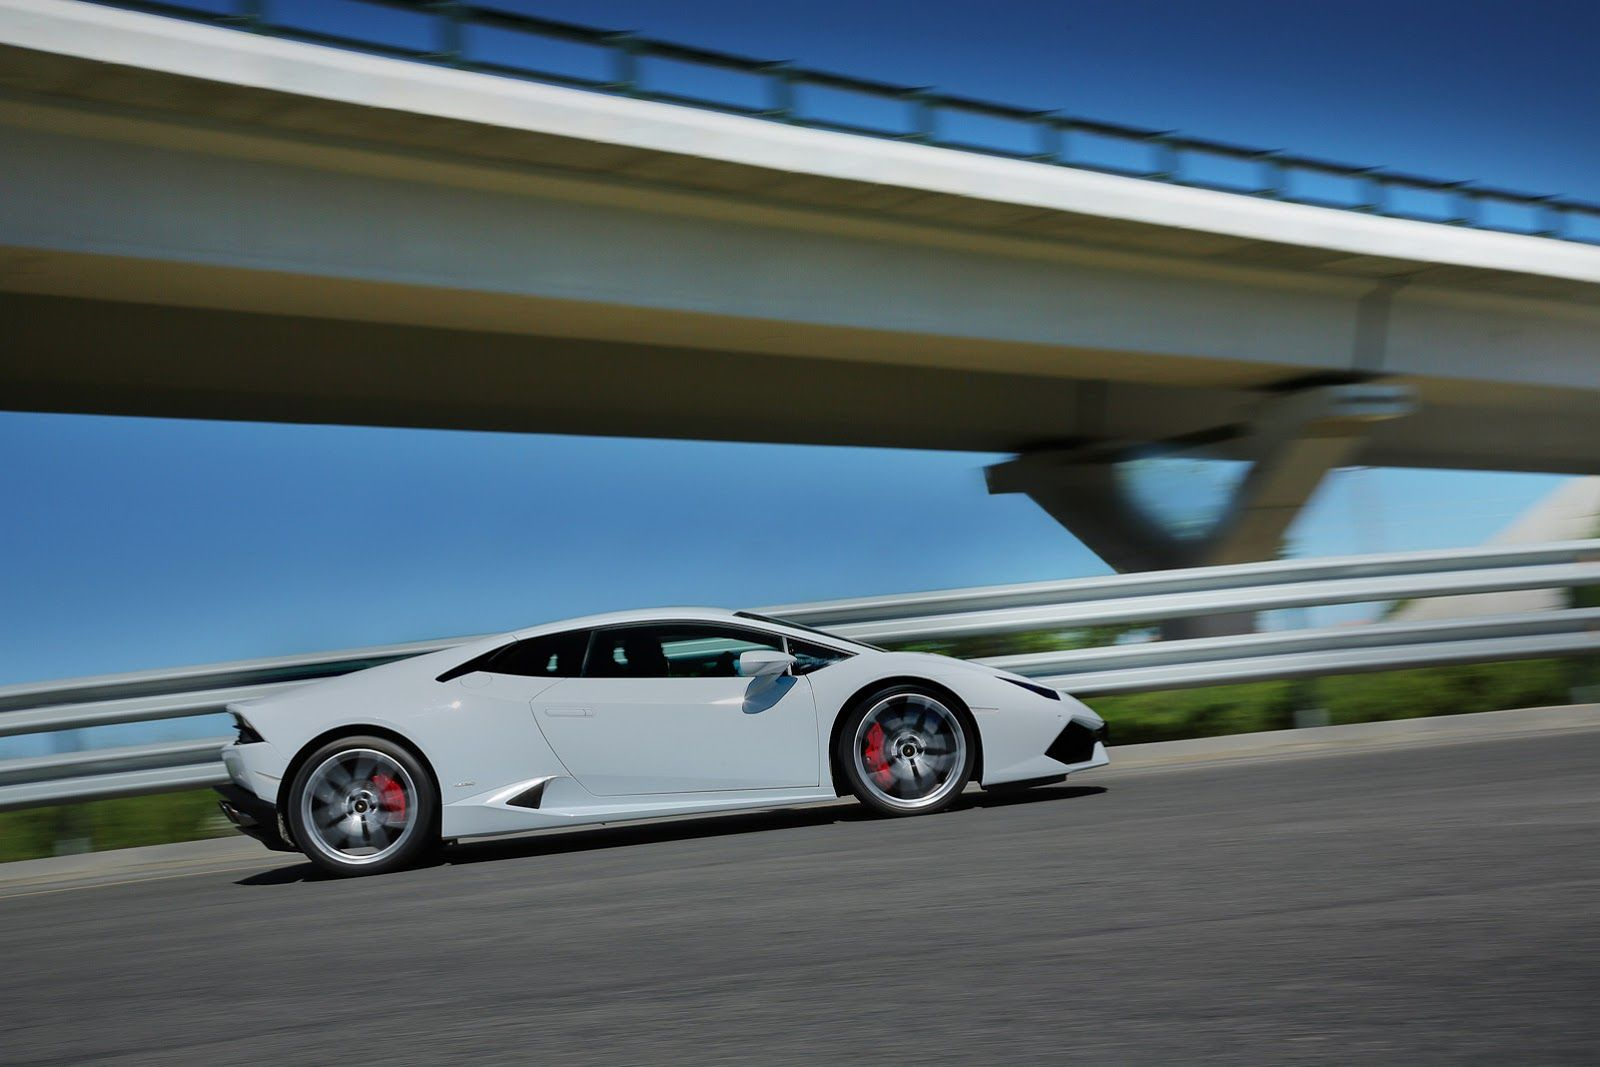 Get All The Latest News On Current And Future Cars Auto Shows - Current sports cars